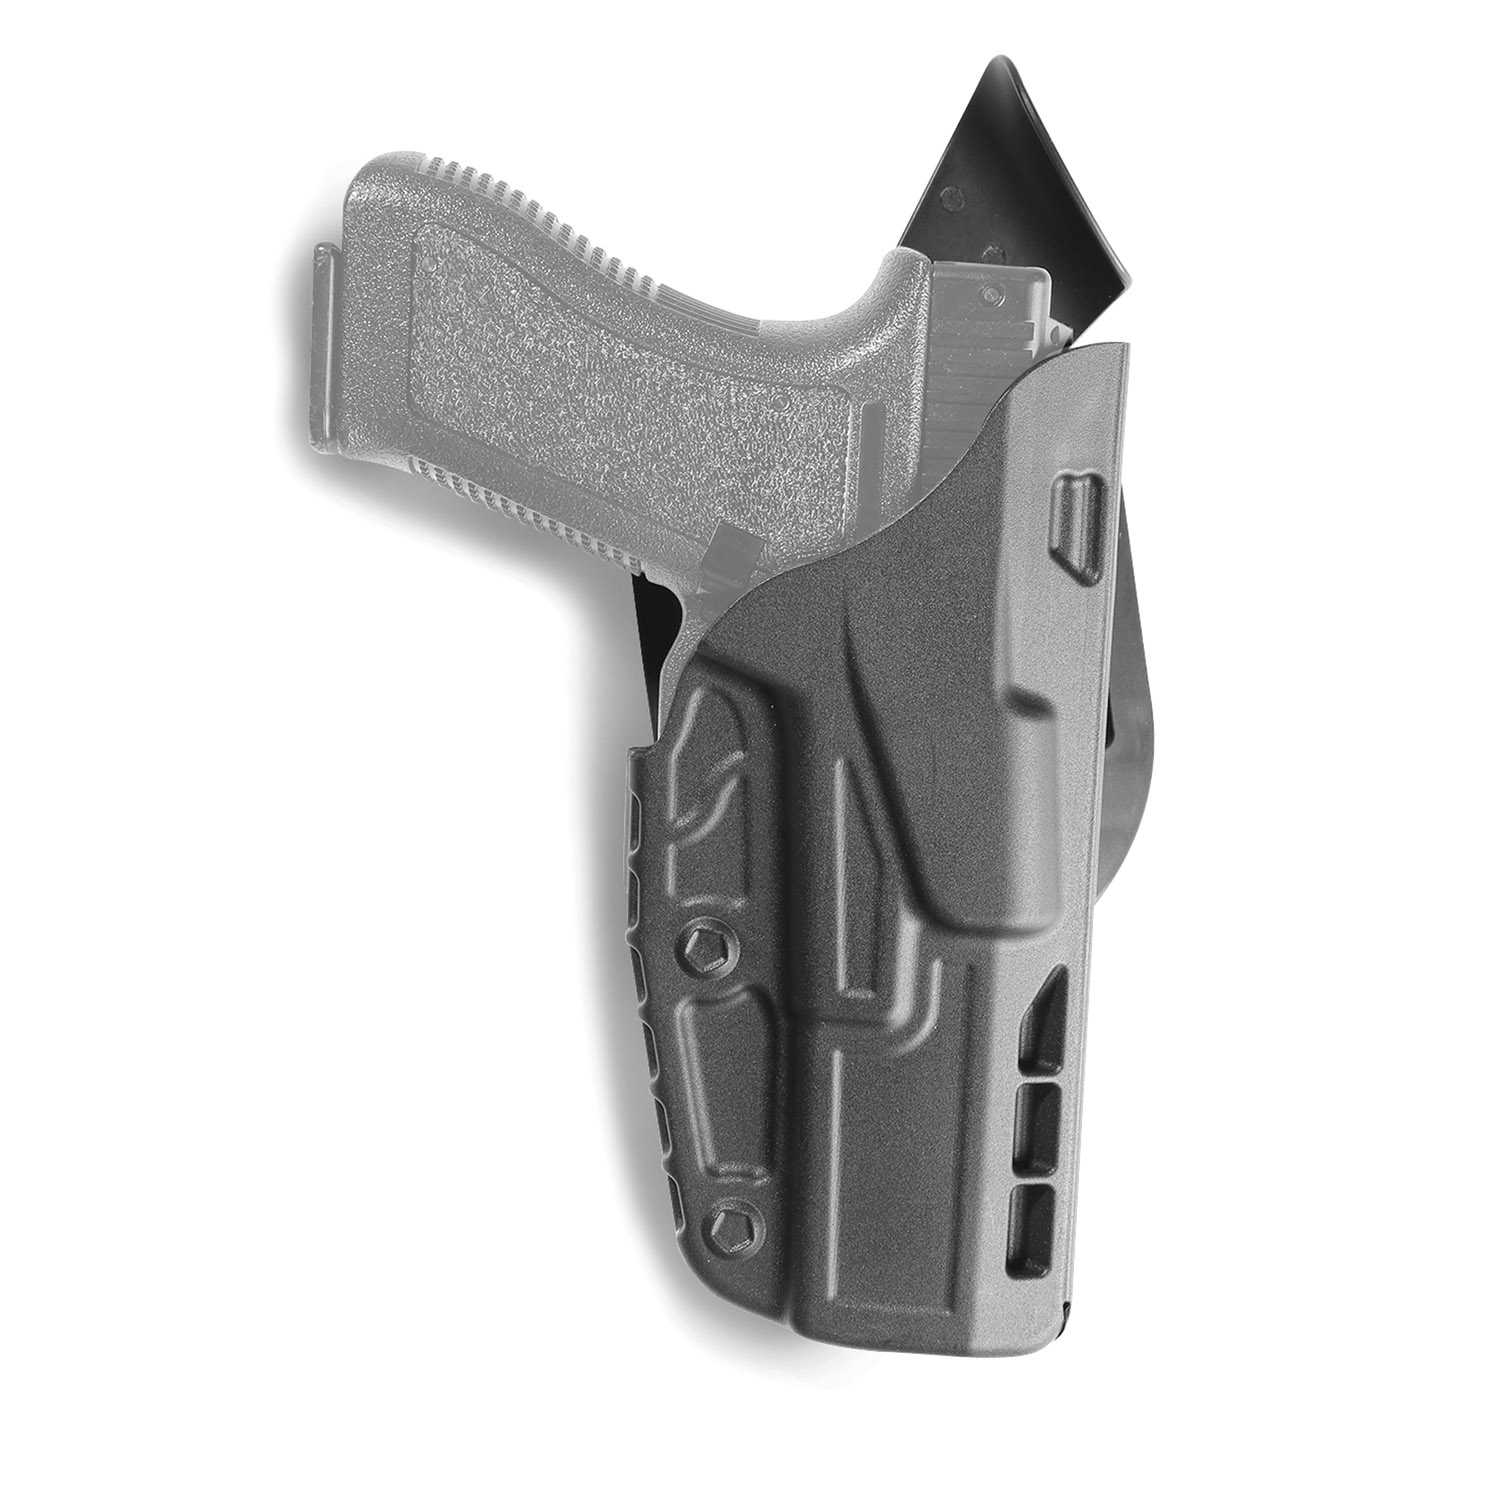 Safariland 7TS 7390 Level I Retention ALS Mid Ride Duty Holster